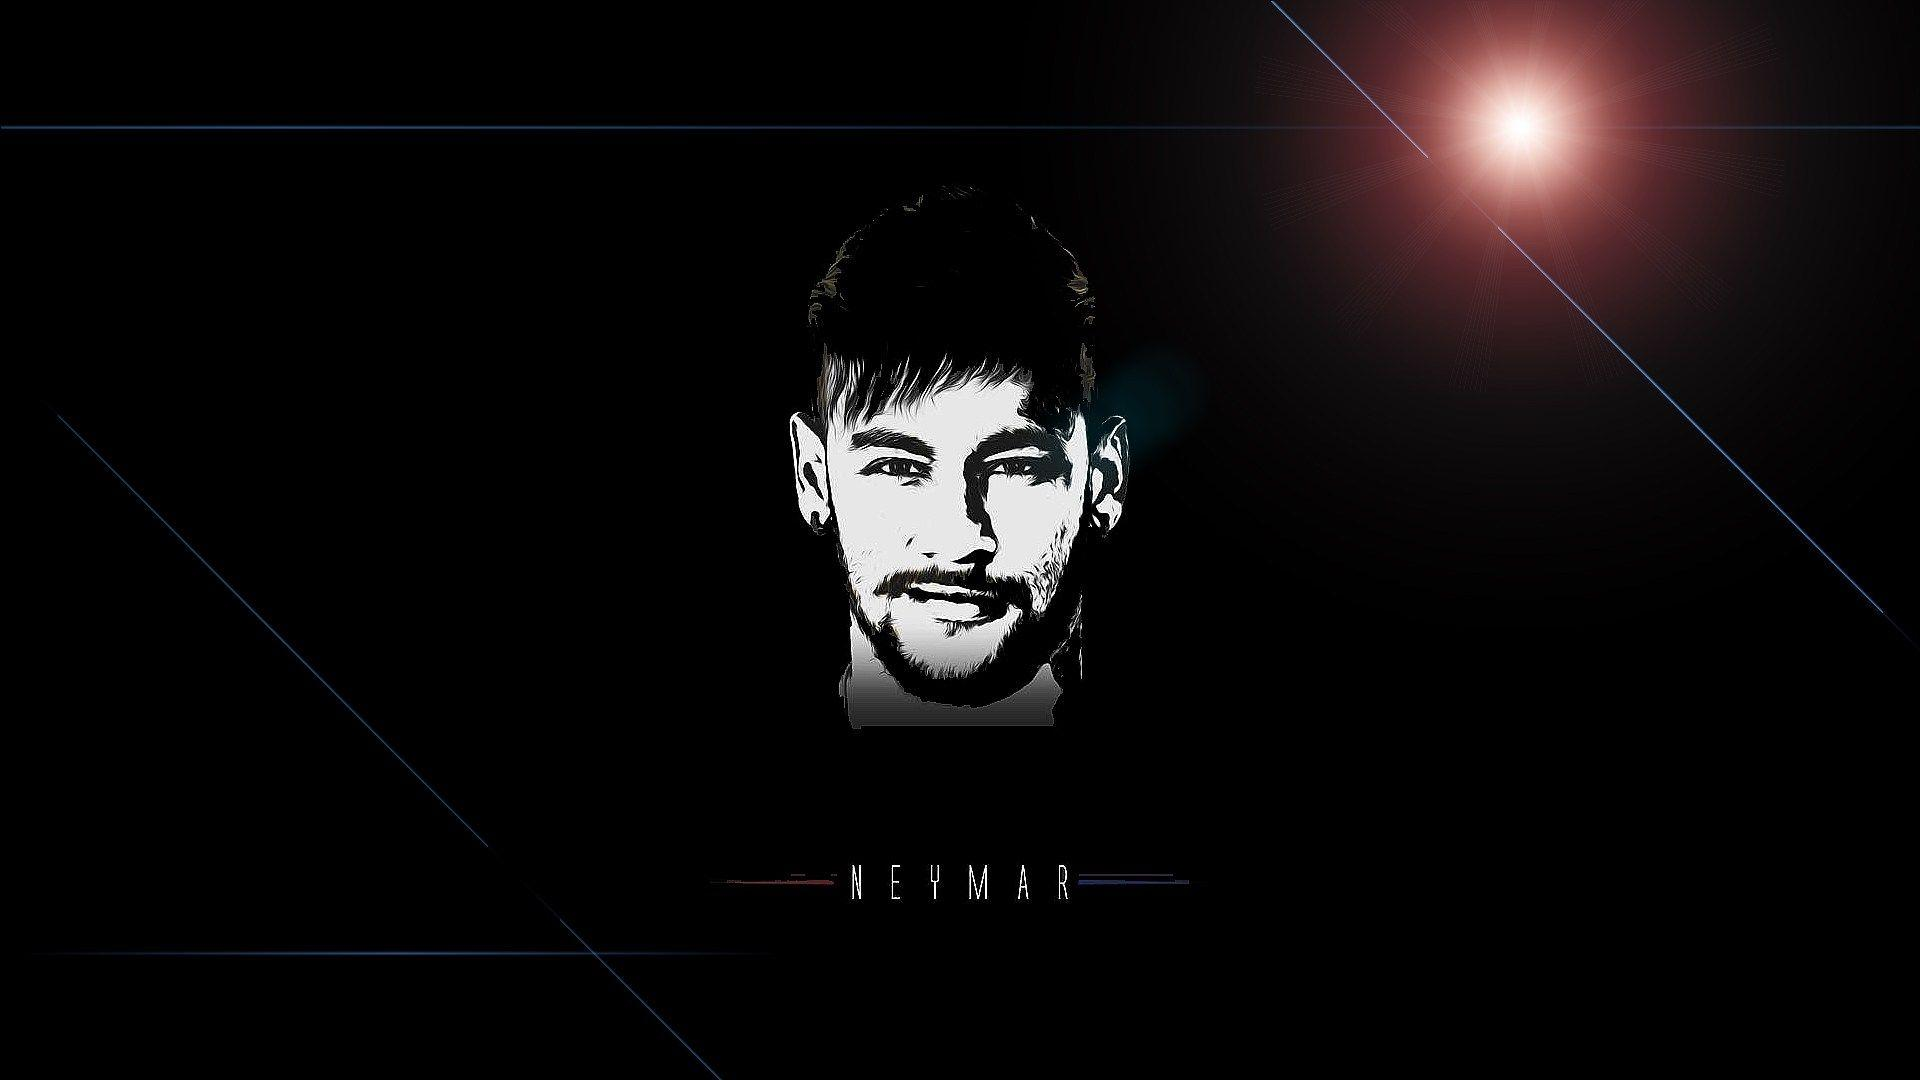 Neymar JR Wallpapers 2018| Neymar Photos hd Download